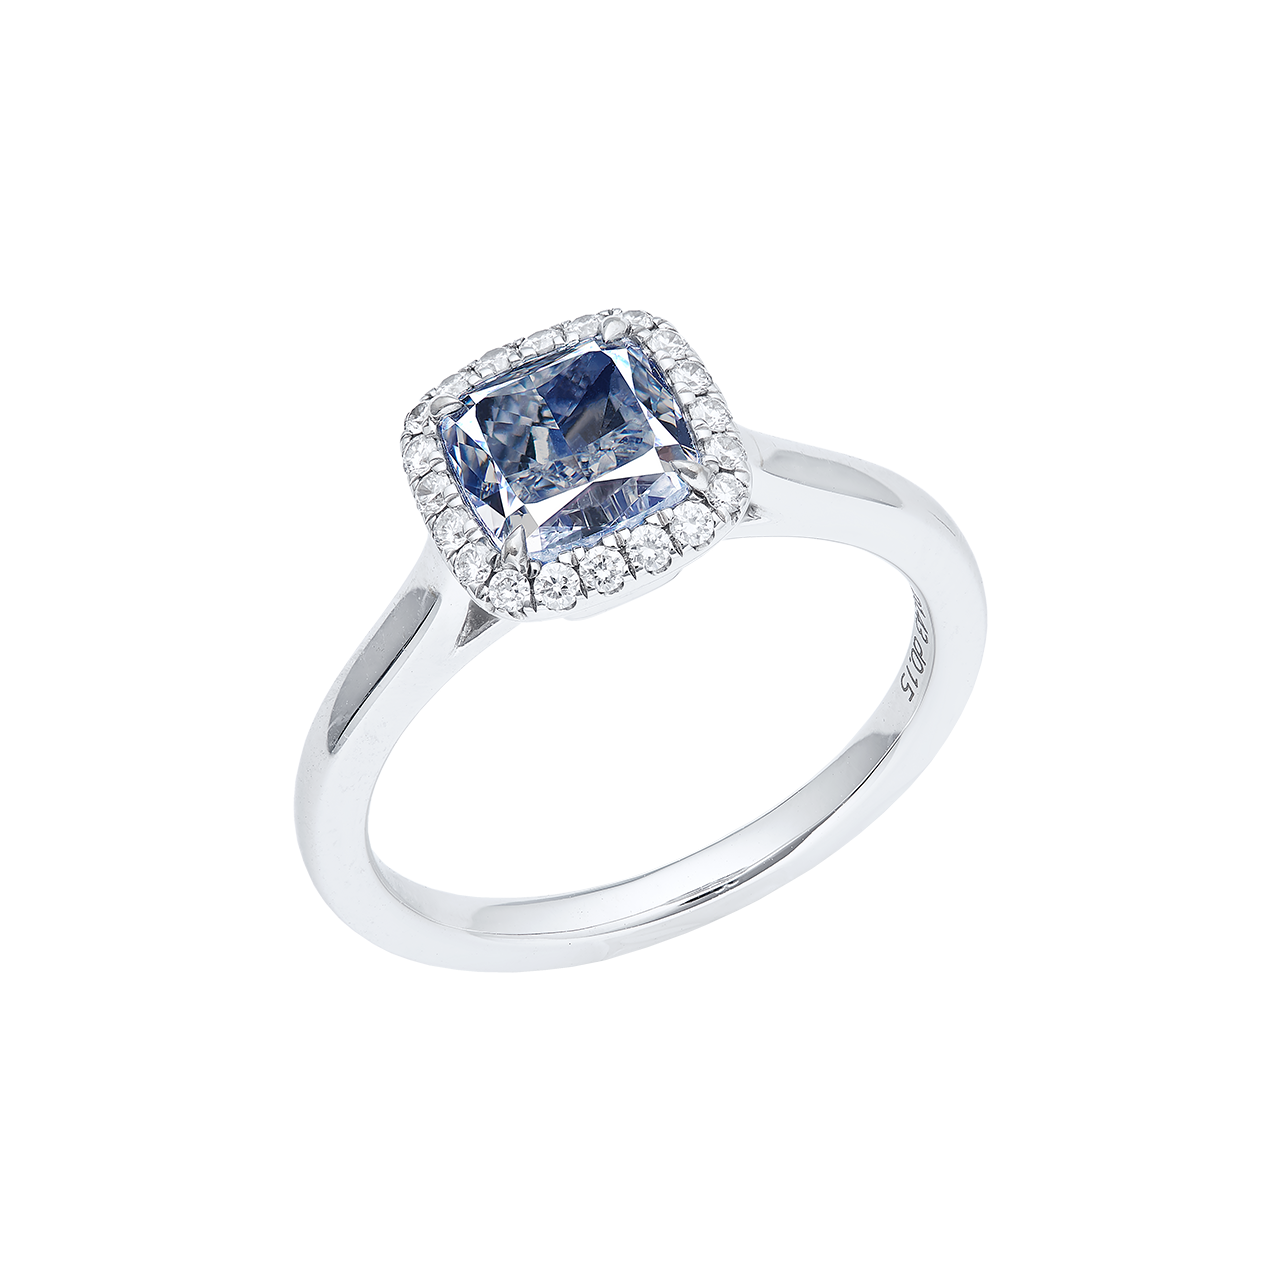 GIA 淡藍鑽鑽石戒 1.43克拉